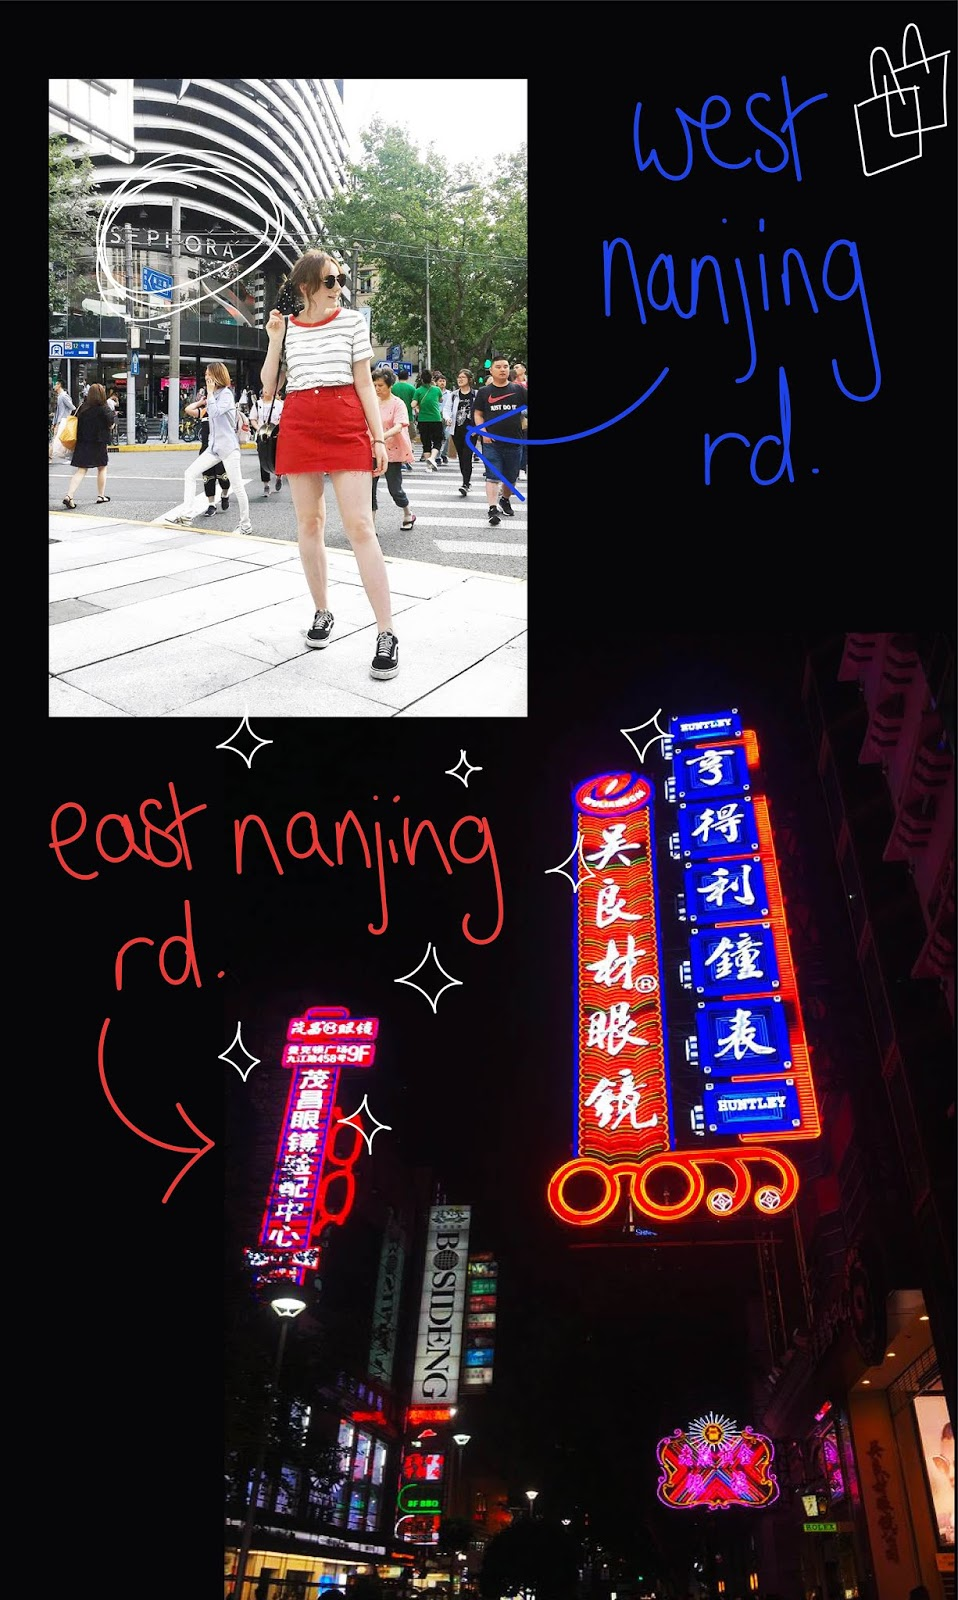 collage of blogger posing on west Nanjing road and the bright neon lights of east Nanjing road at night